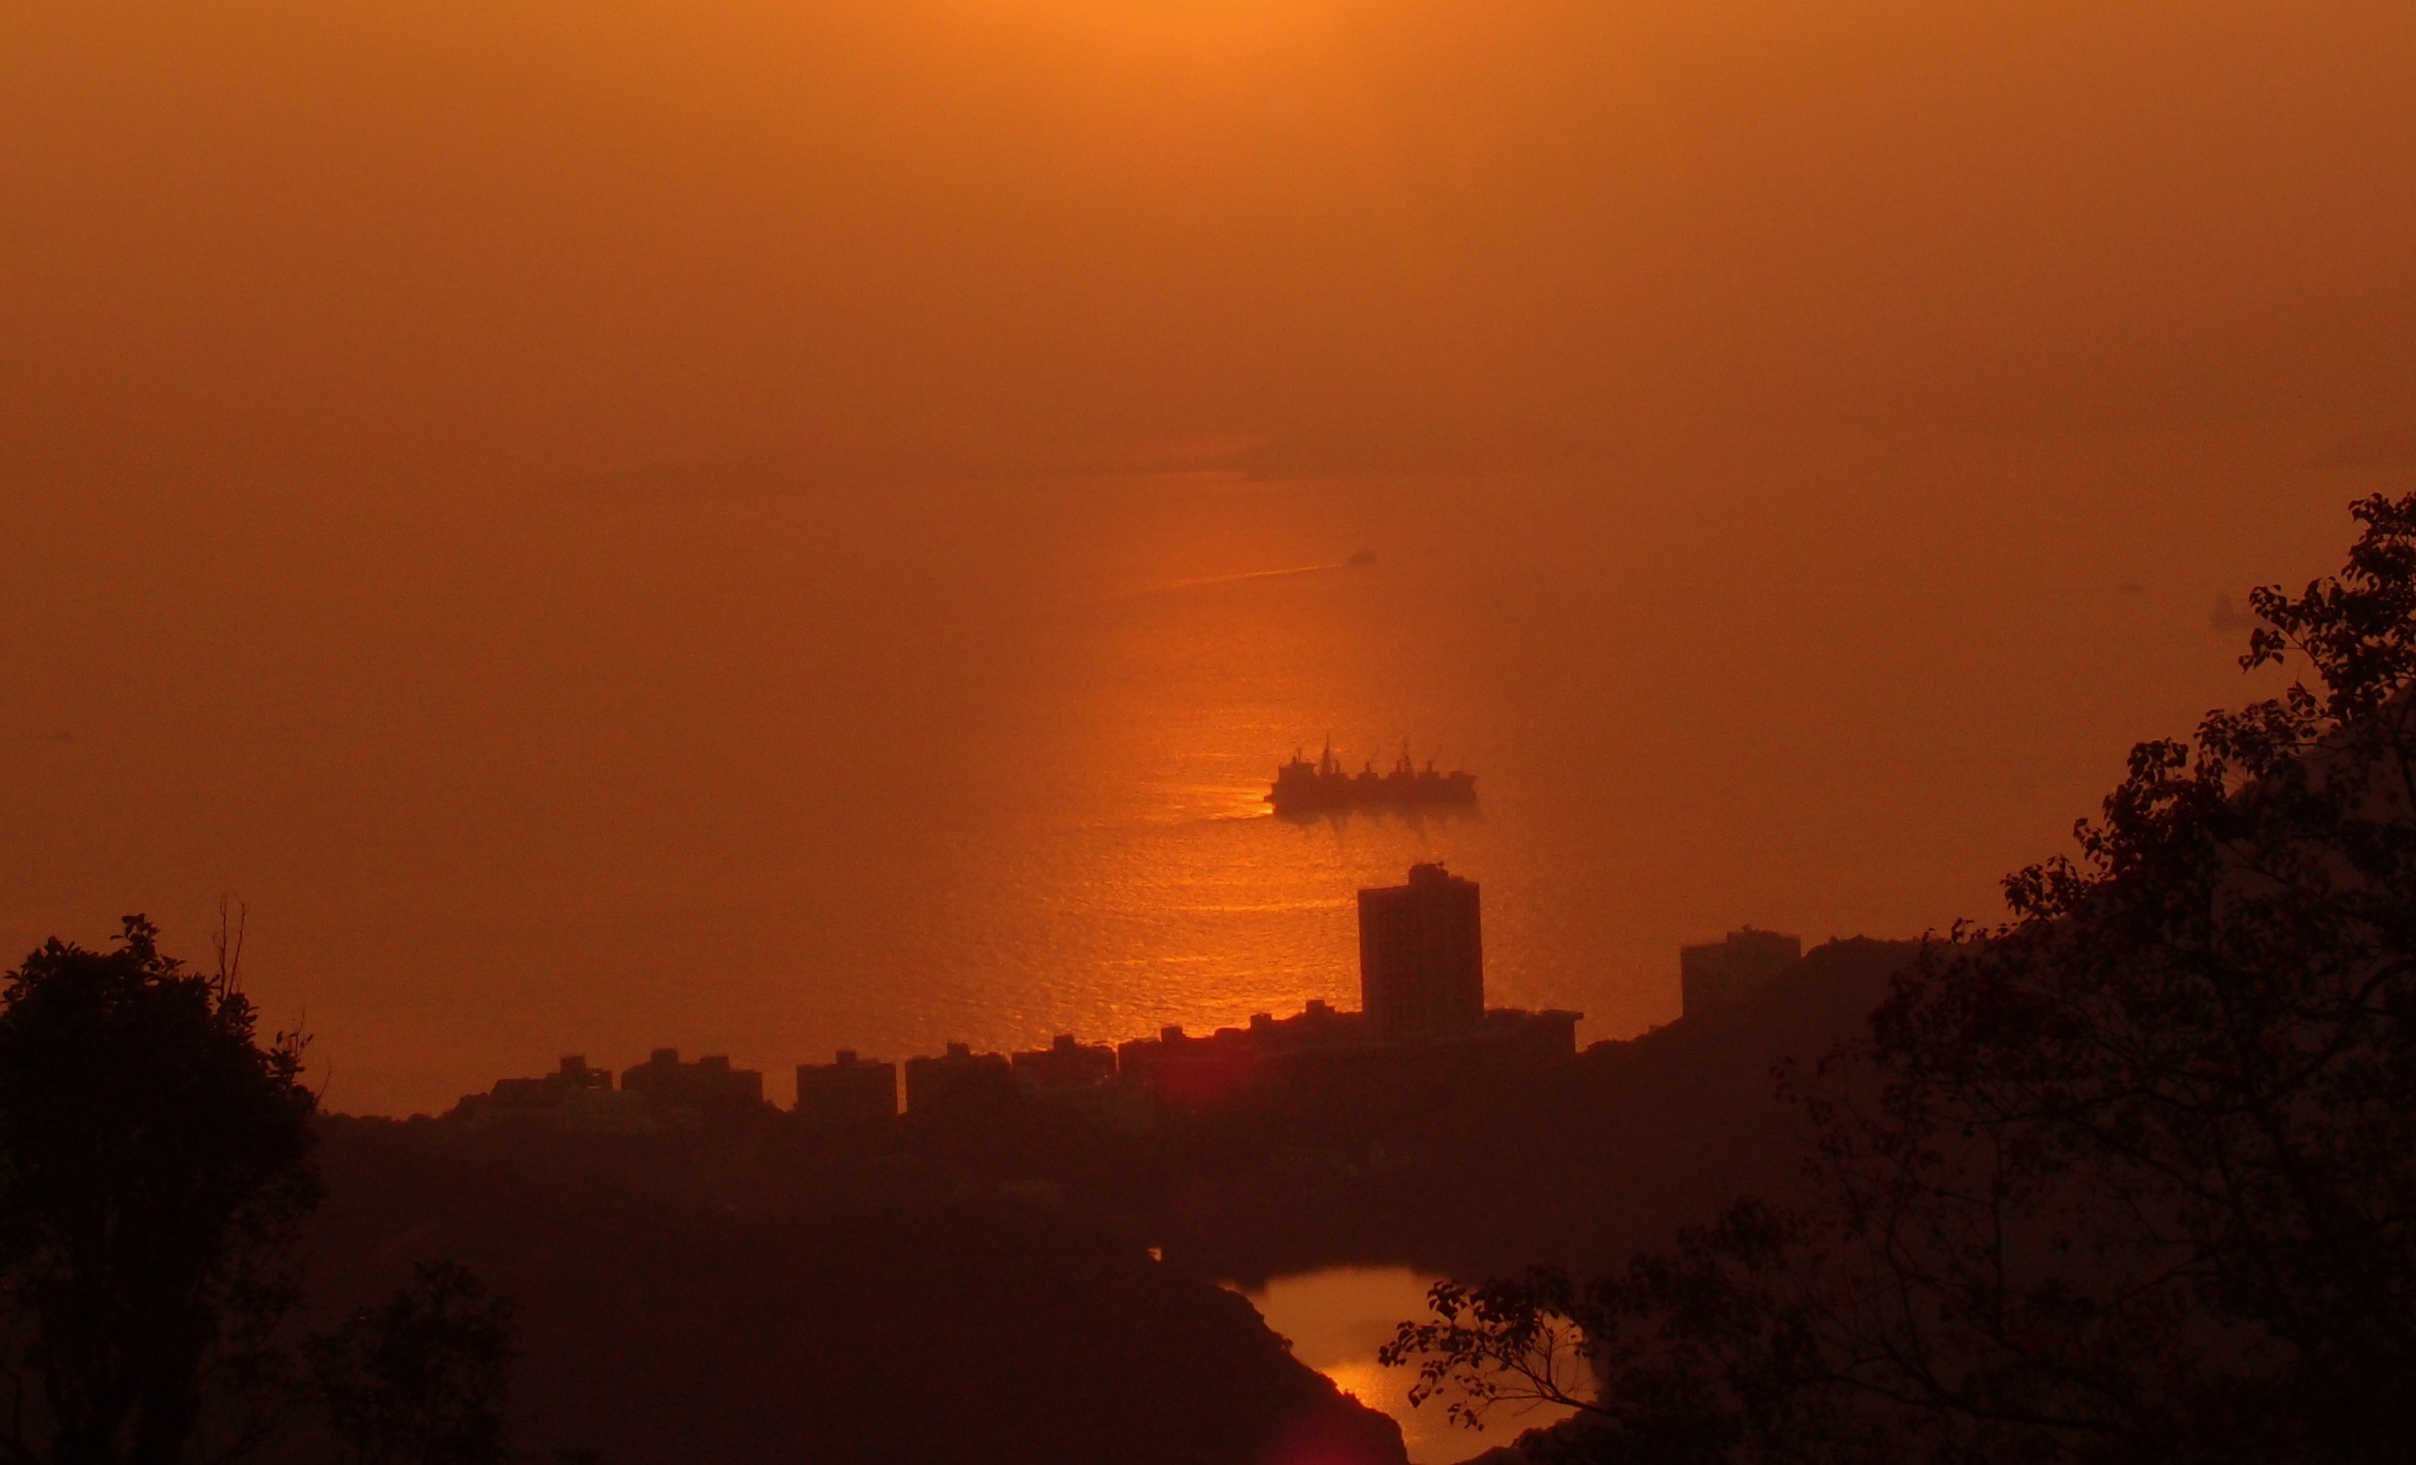 A glorious sunset at the Peak with Cheung Chau Island in the distance.